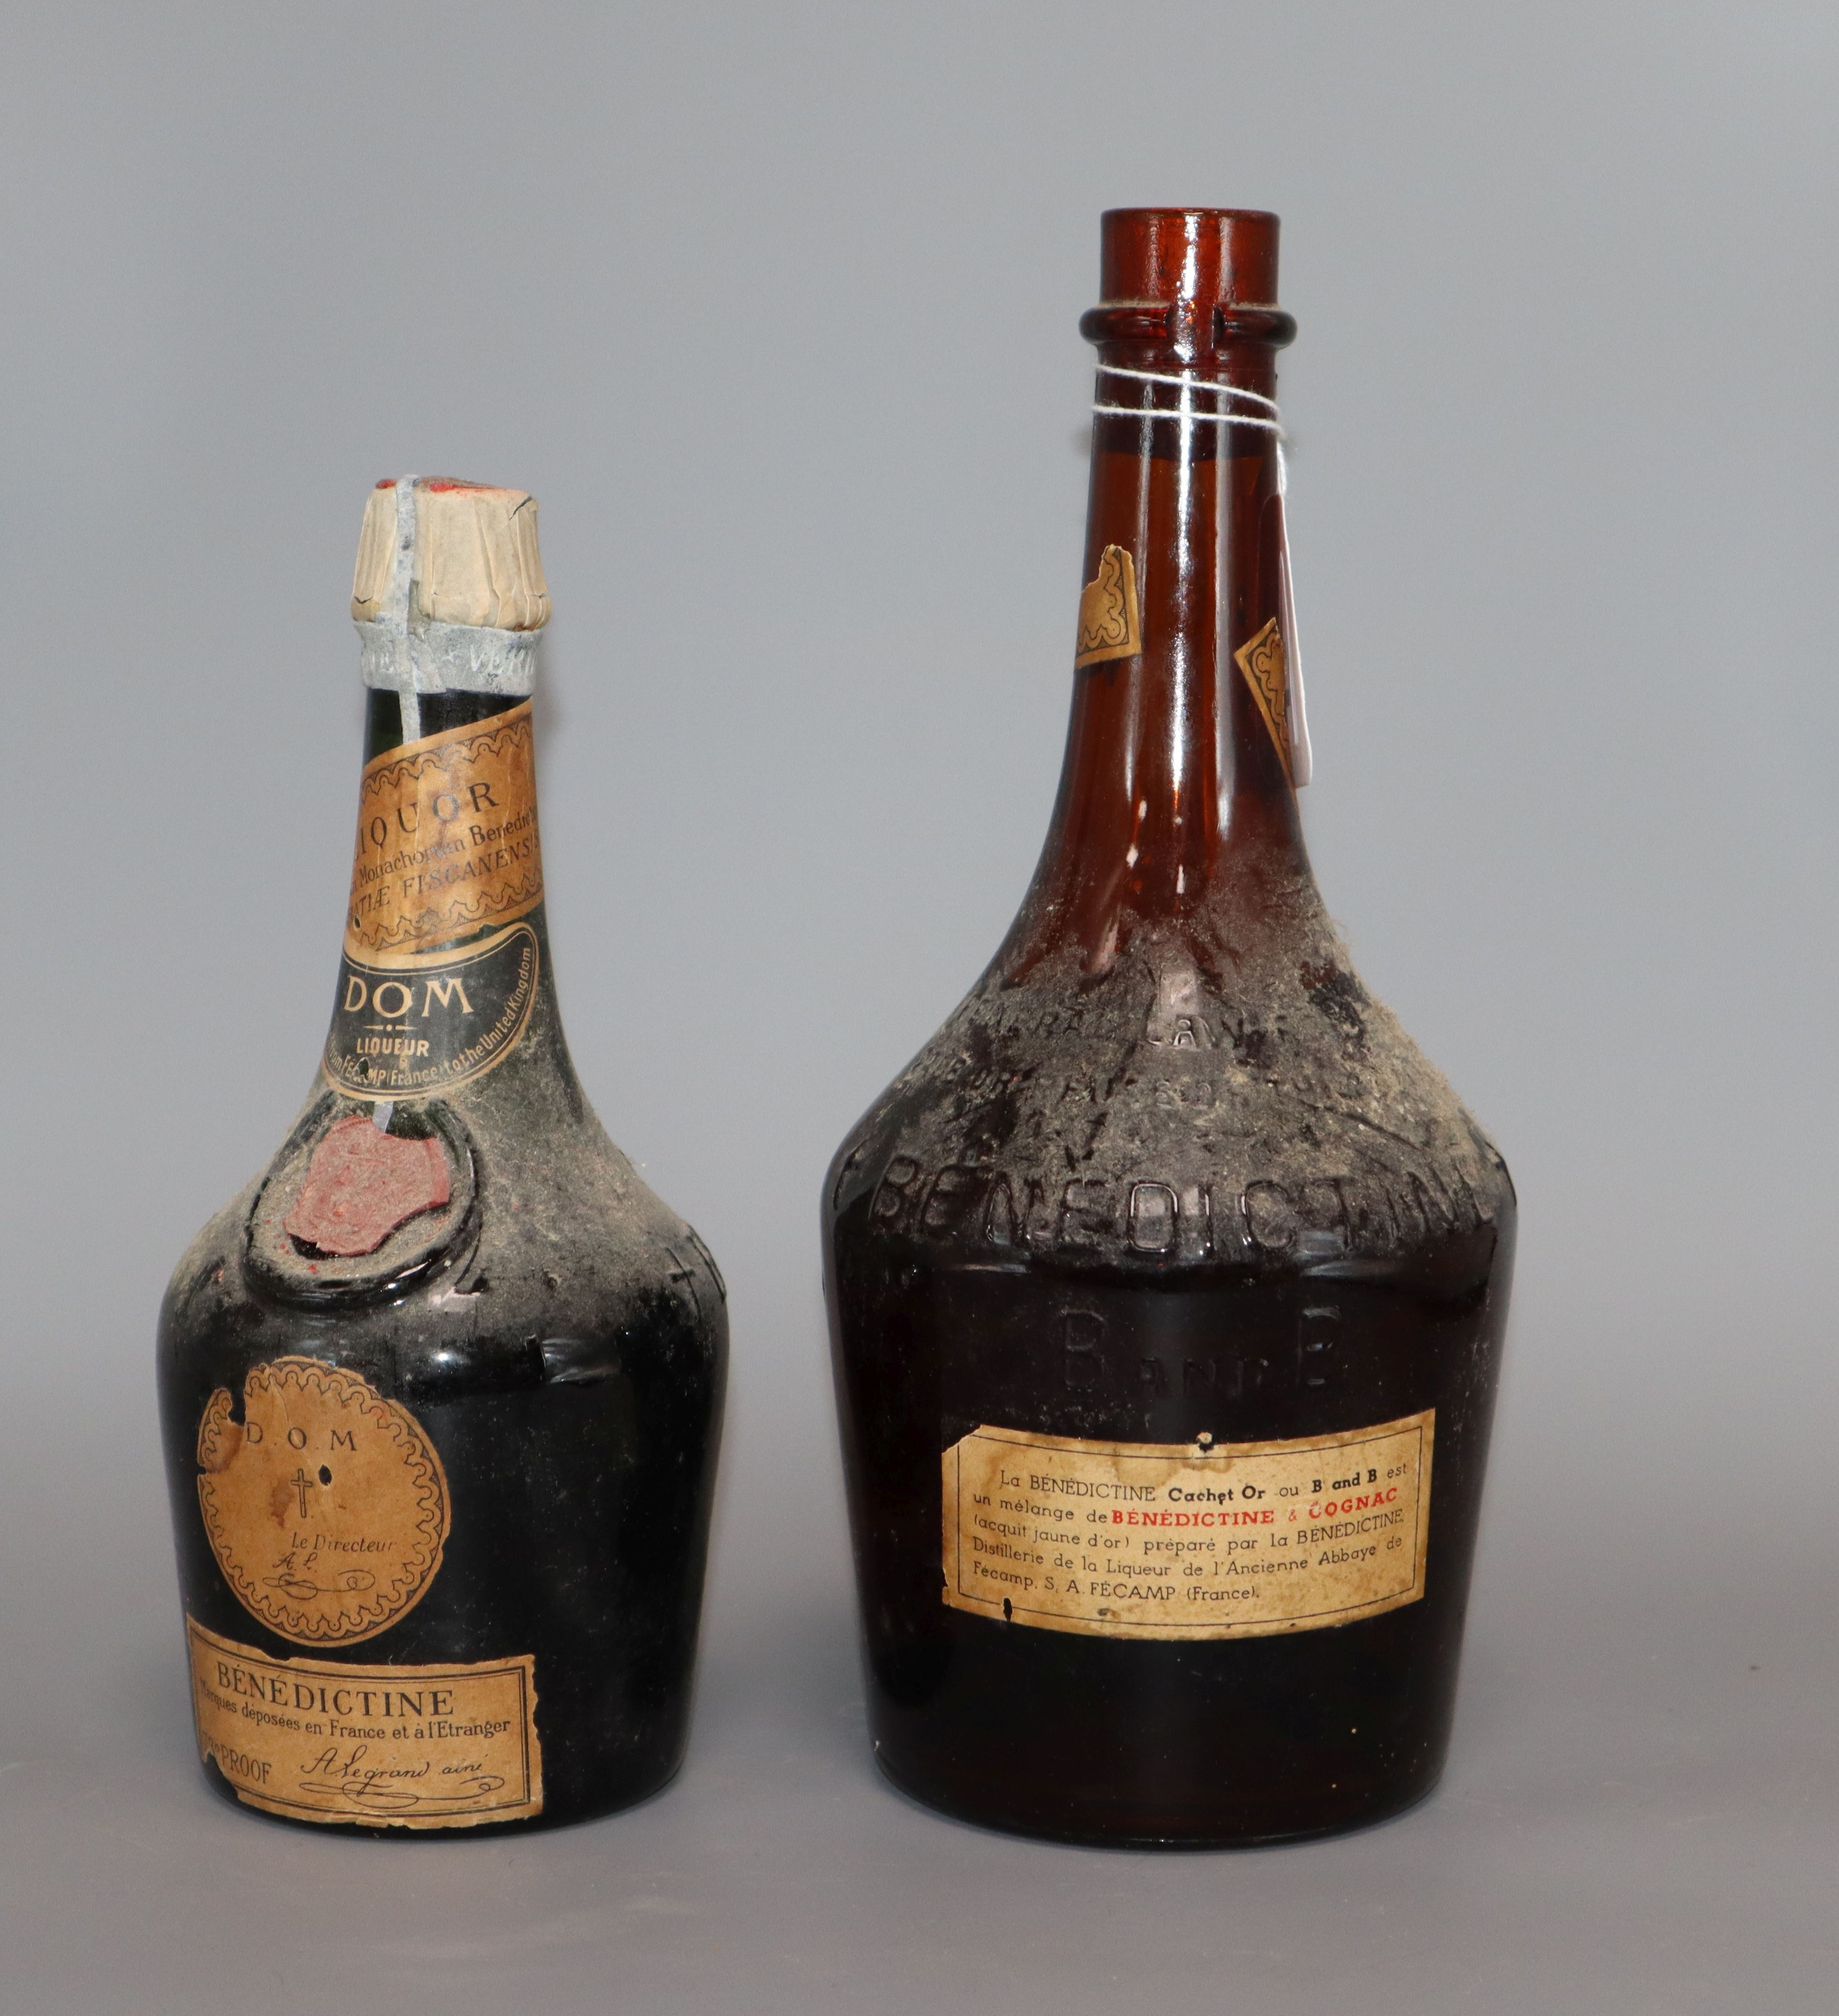 Lot 110 - Two bottles of Benedictine, 70 proof and 43 proof